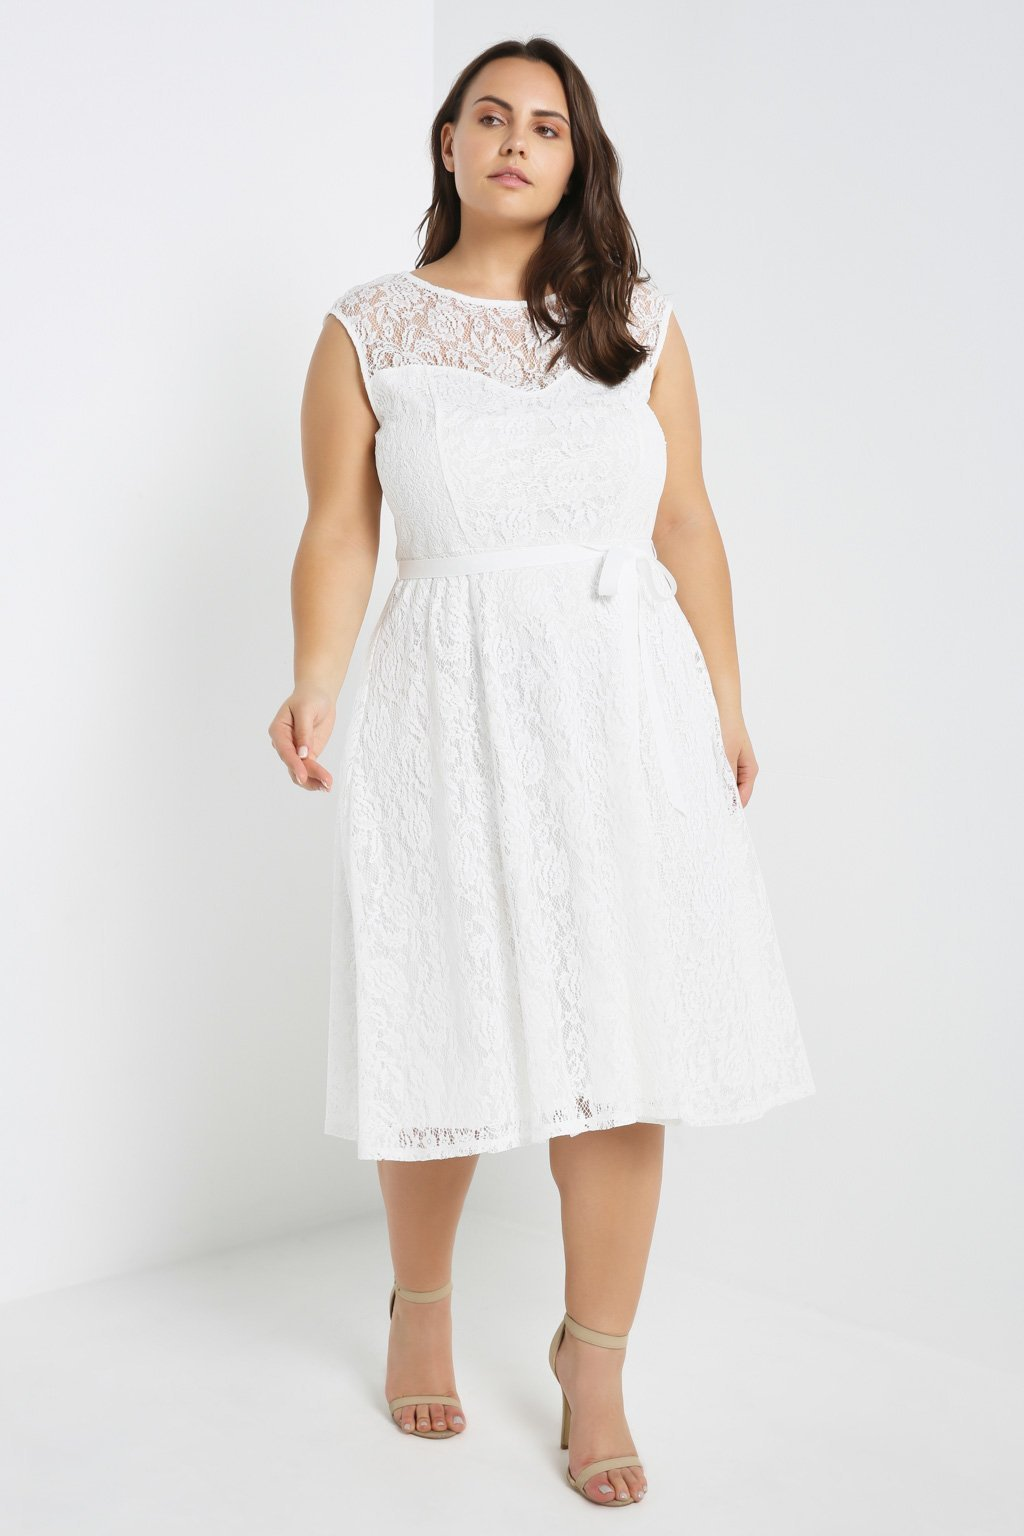 White Floral Overlay Skater Dress Plus Size – Canyla Ash ...